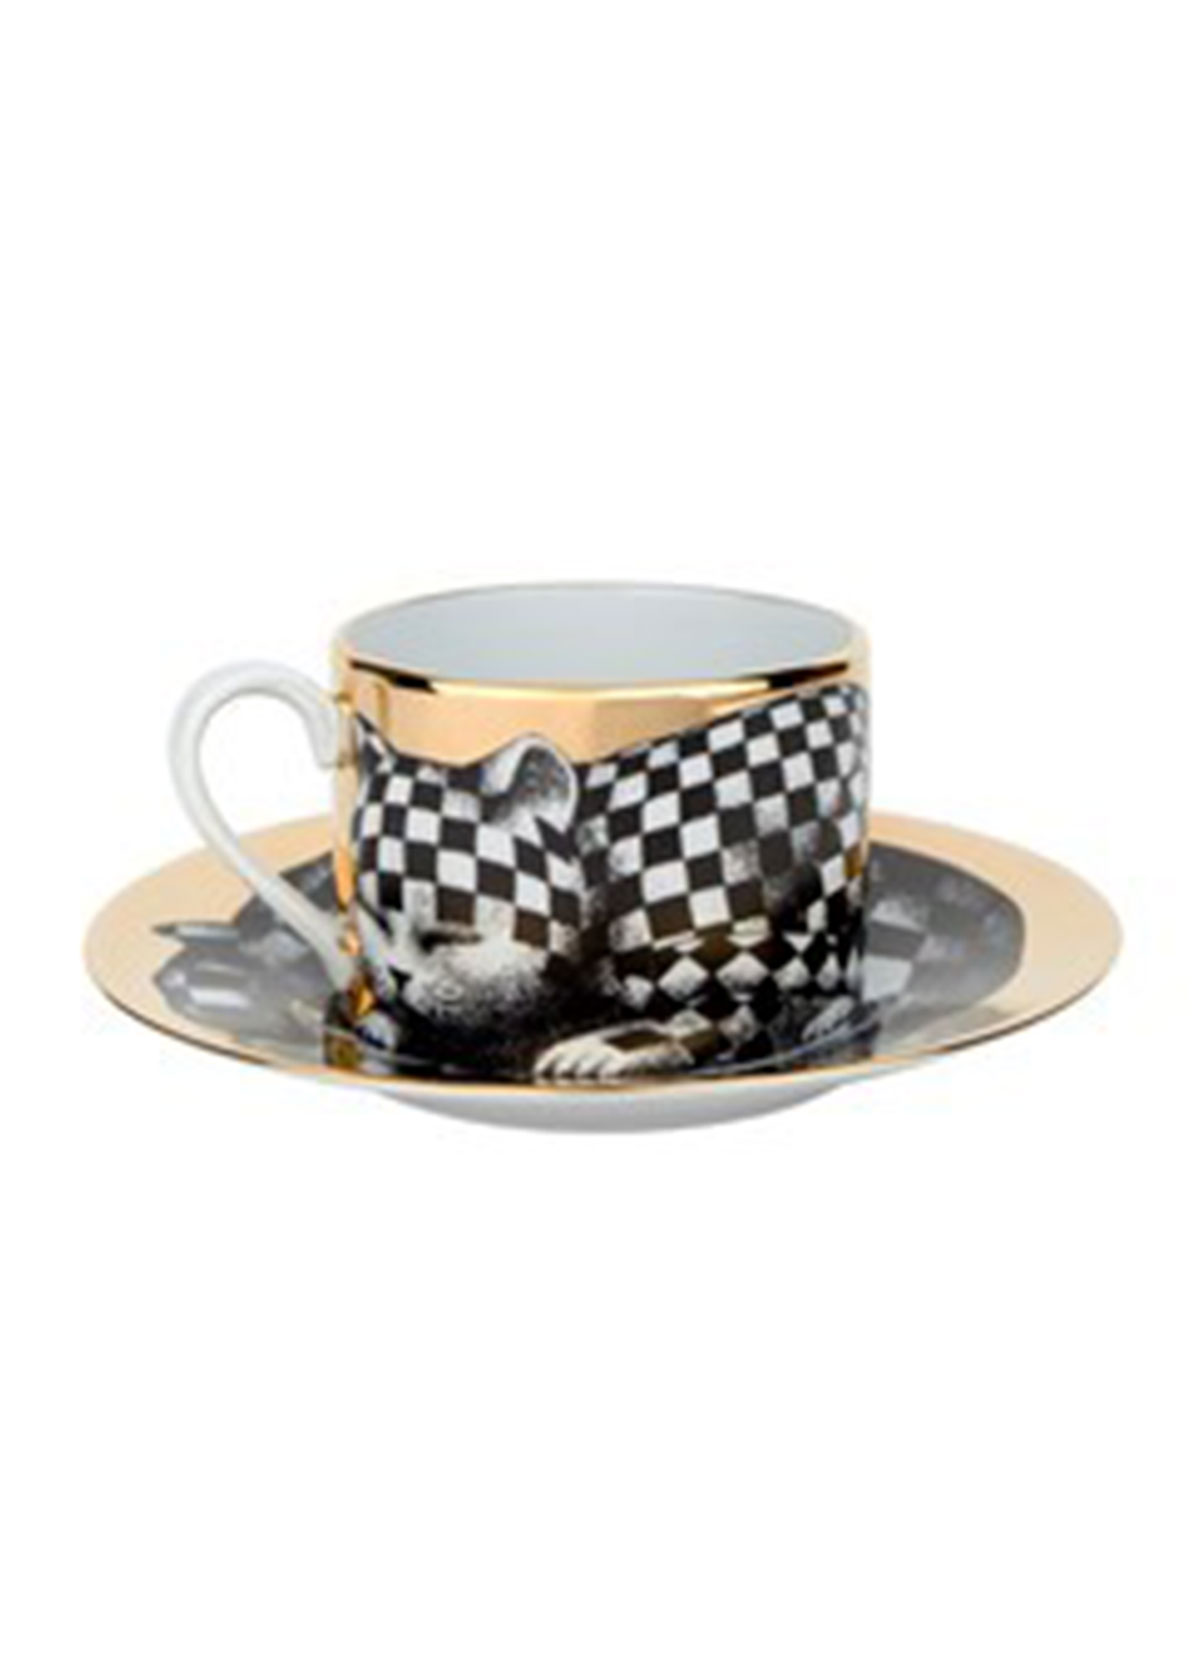 Fornasetti TEA CUP HIGH FIDELITY QUADRETTATO CHECKERED CAT